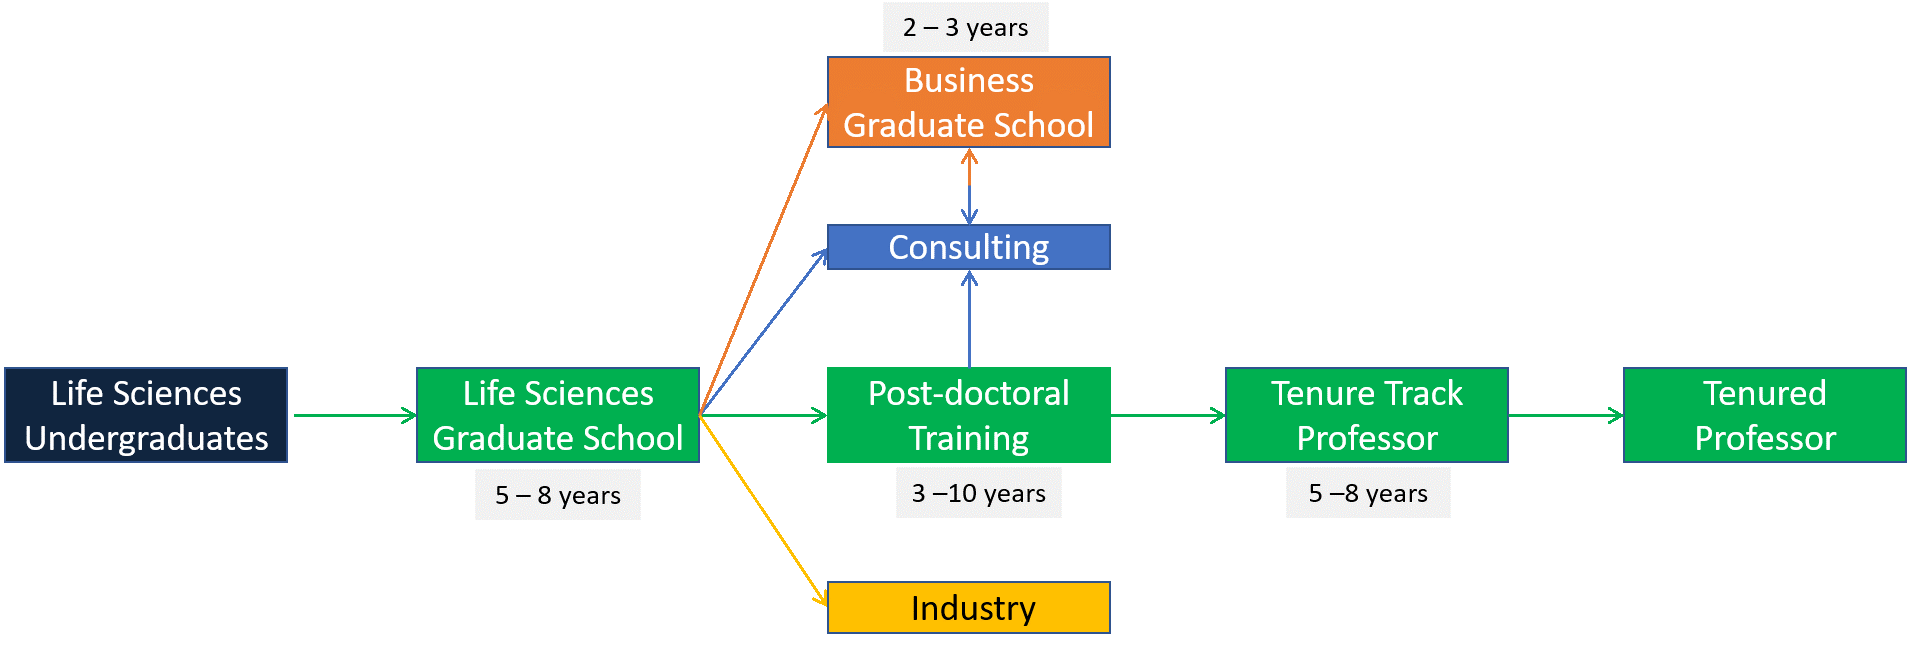 Earning a PhD in the life sciences can take 5-8 years.